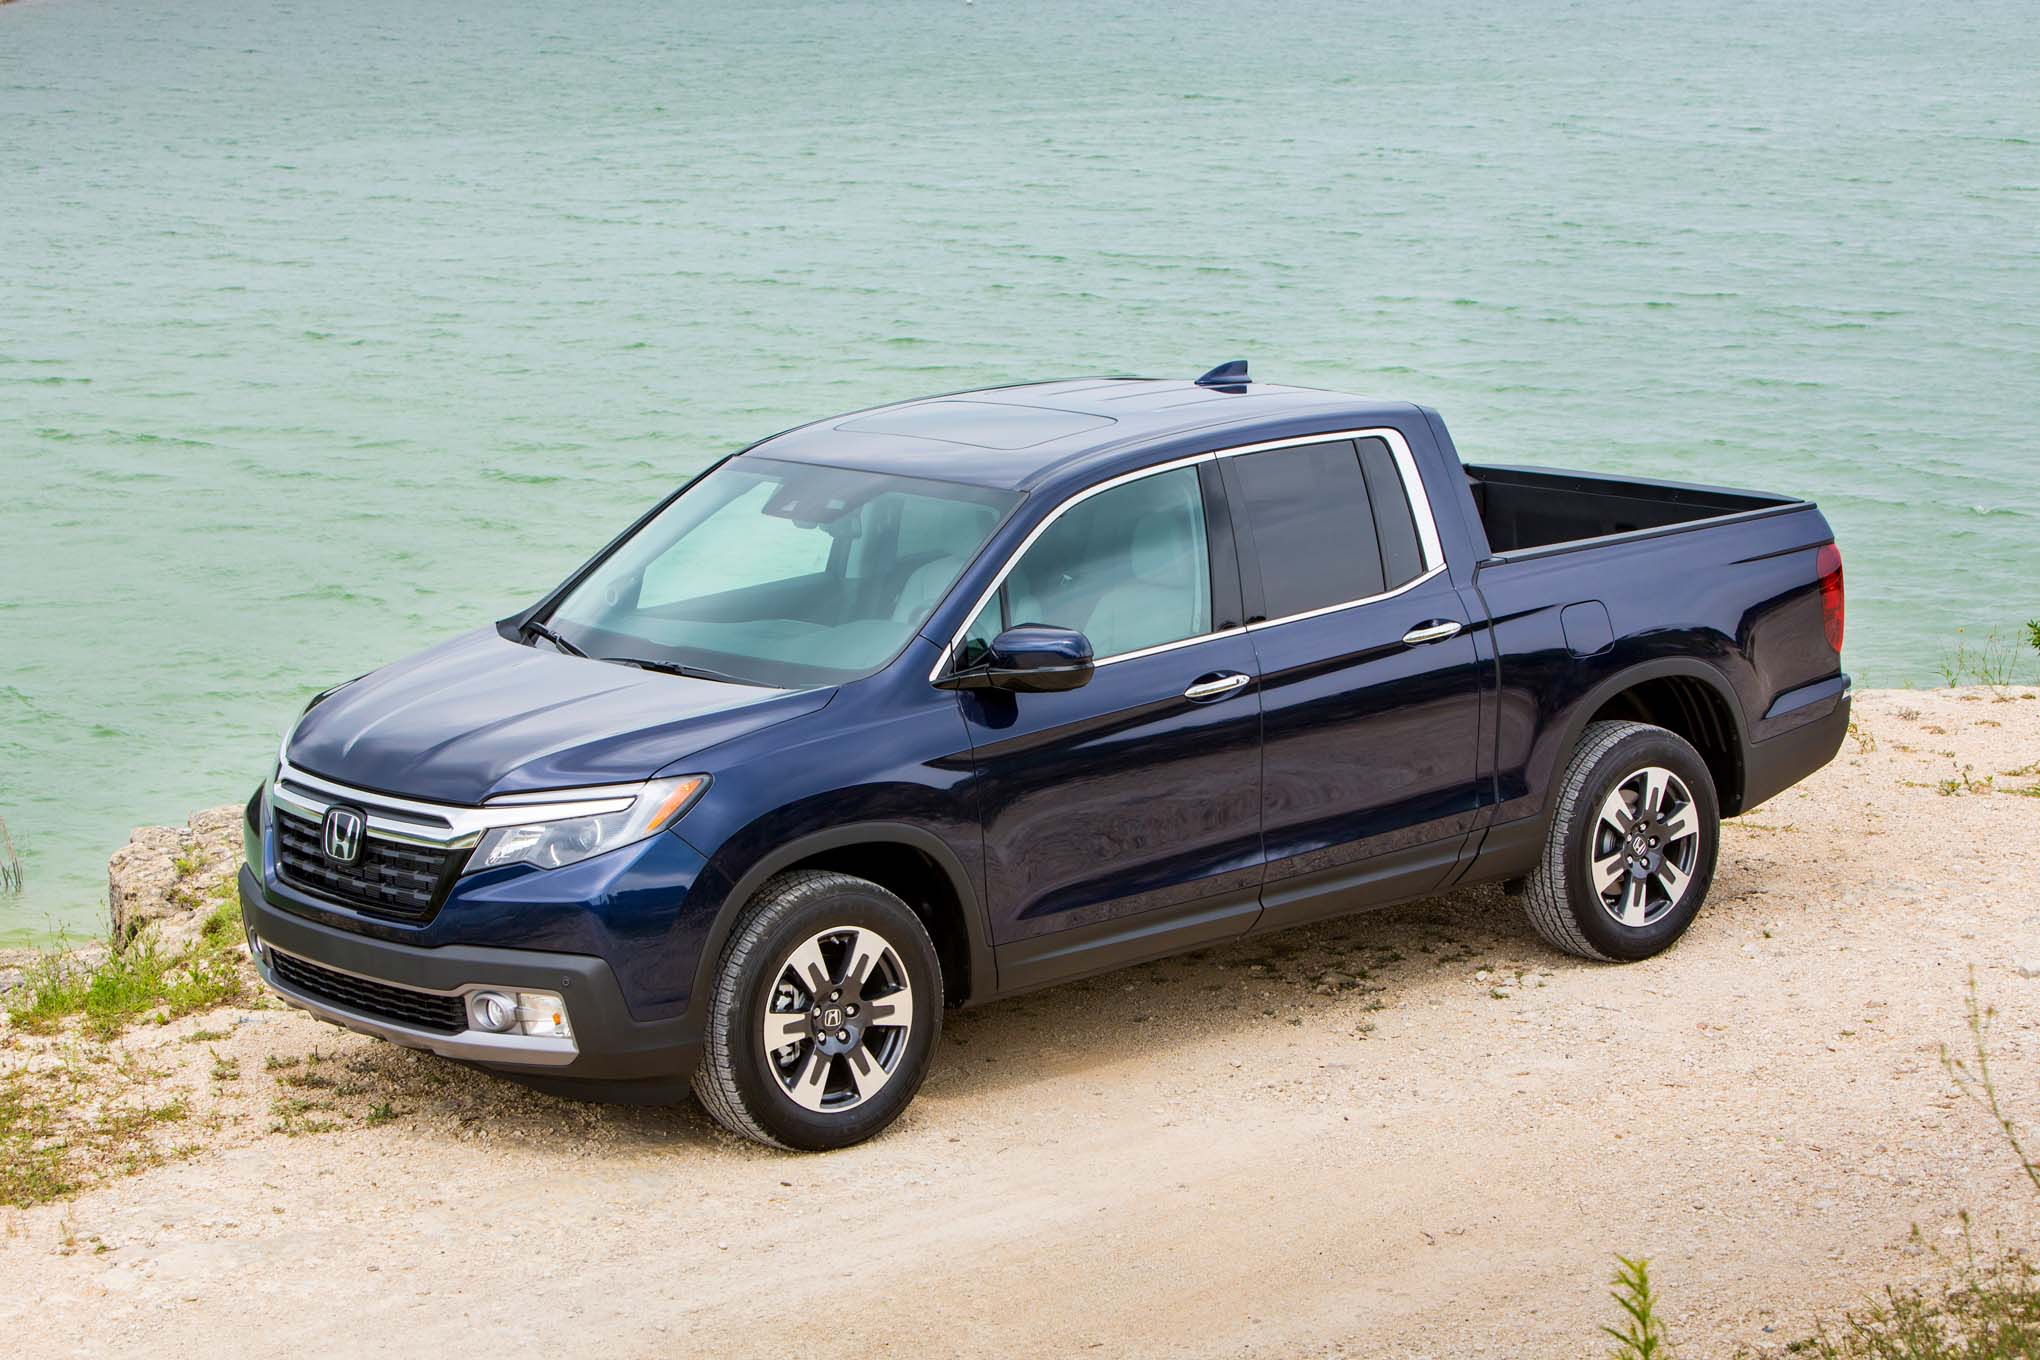 video honda drops toolbox into bed of ridgeline to prove a subtle point also 2017 honda ridgeline blue on single motor circuit diagram [ 2040 x 1360 Pixel ]